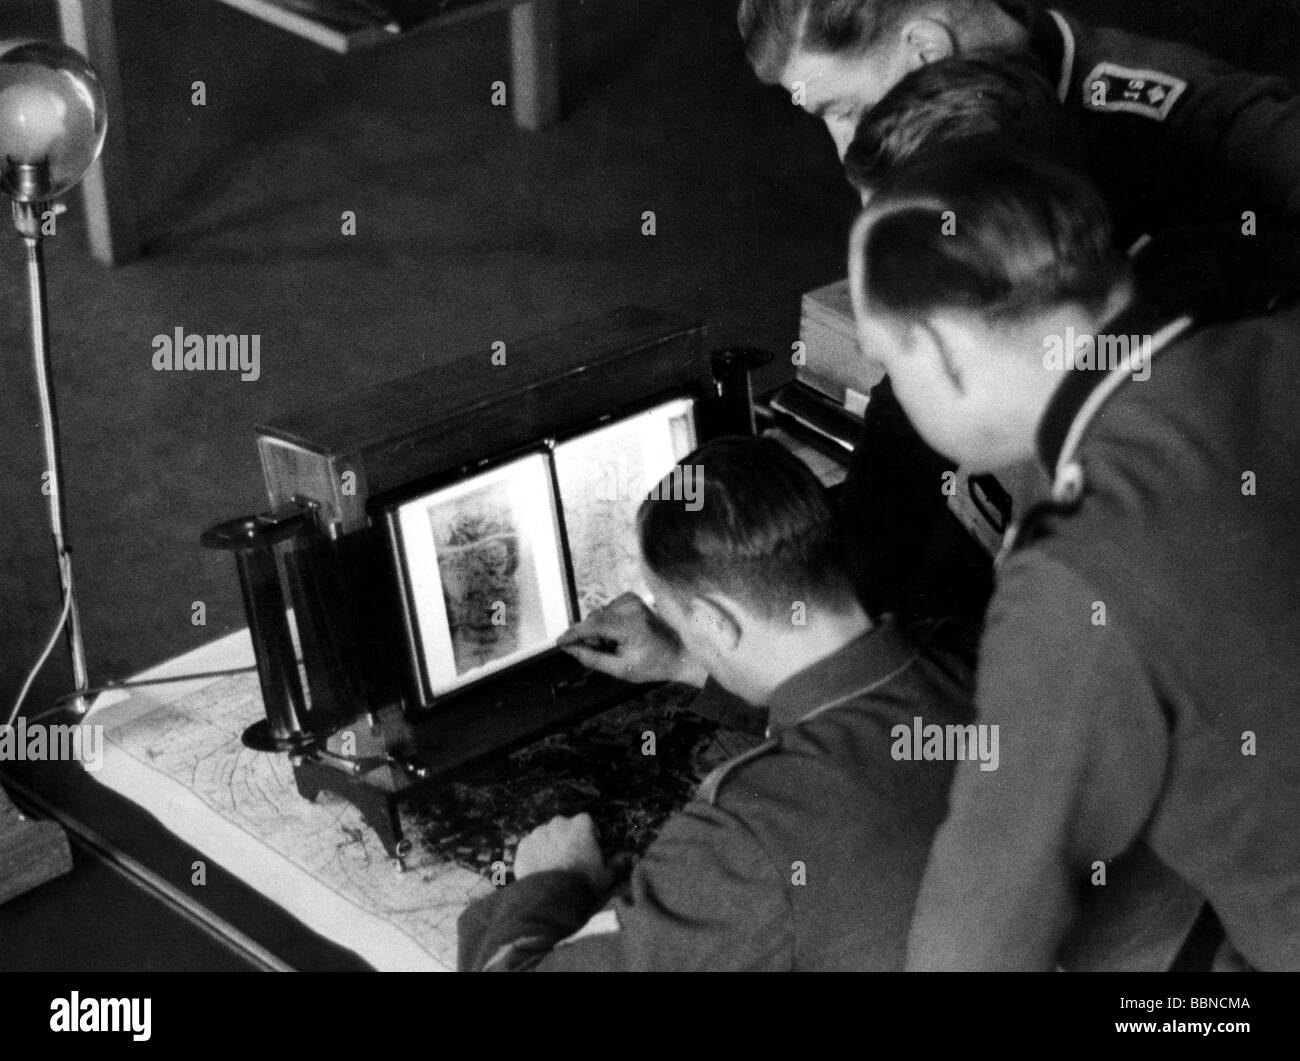 Nazism / National Socialism, military, Wehrmacht, Luftwaffe, reconnaissance, examination of aerial recce photos, - Stock Image